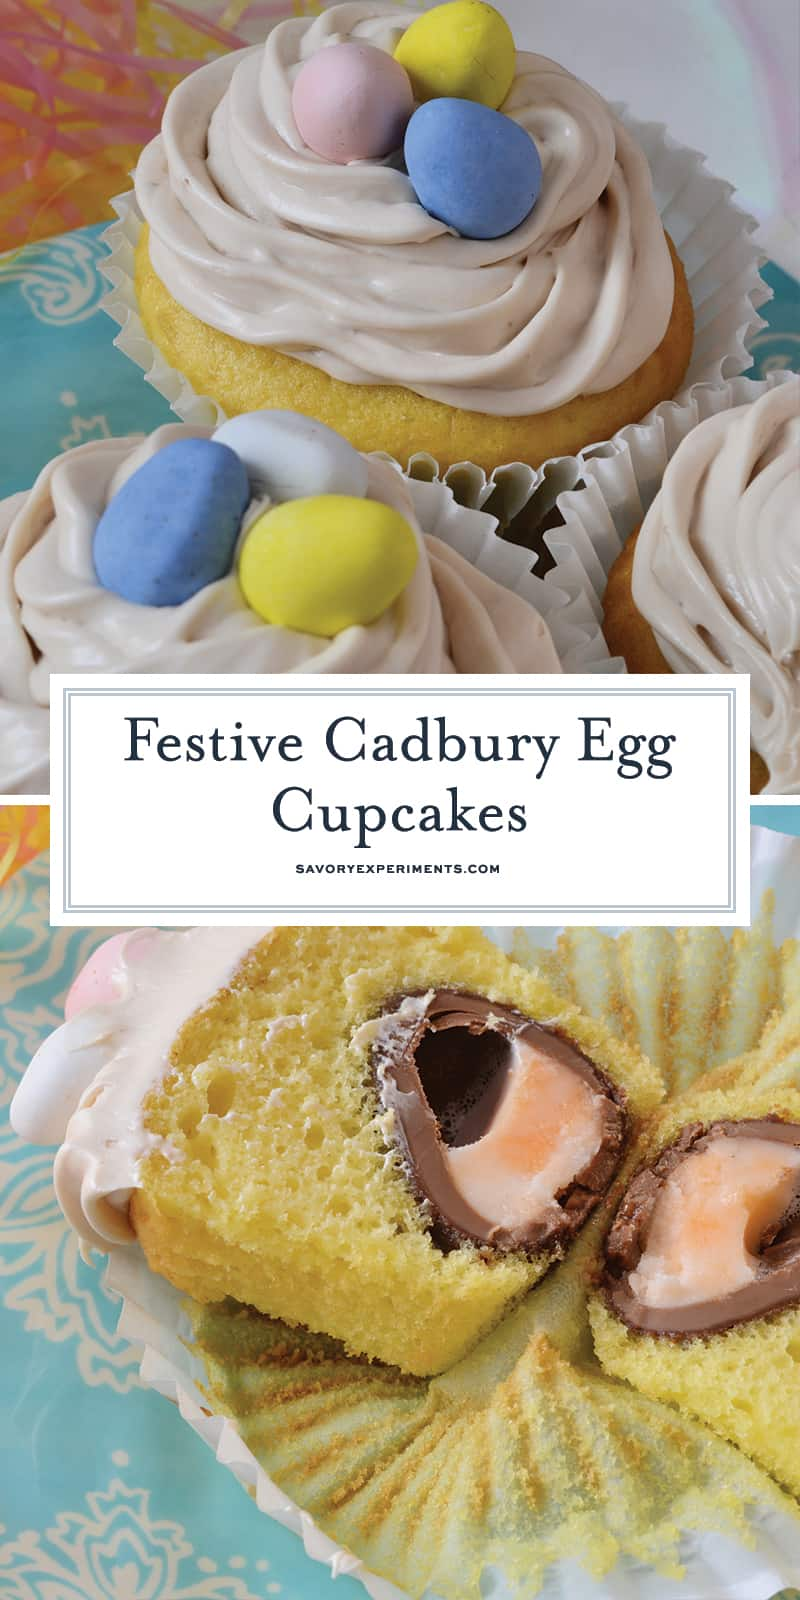 Cadbury Egg Cupcakes Recipe- where are my Cadbury Egg lovers at? Check out my jumbo cupcakes with a Cadbury Egg inside and crème whipped right into the frosting. The perfect Easter dessert! www.savoryexperiments.com